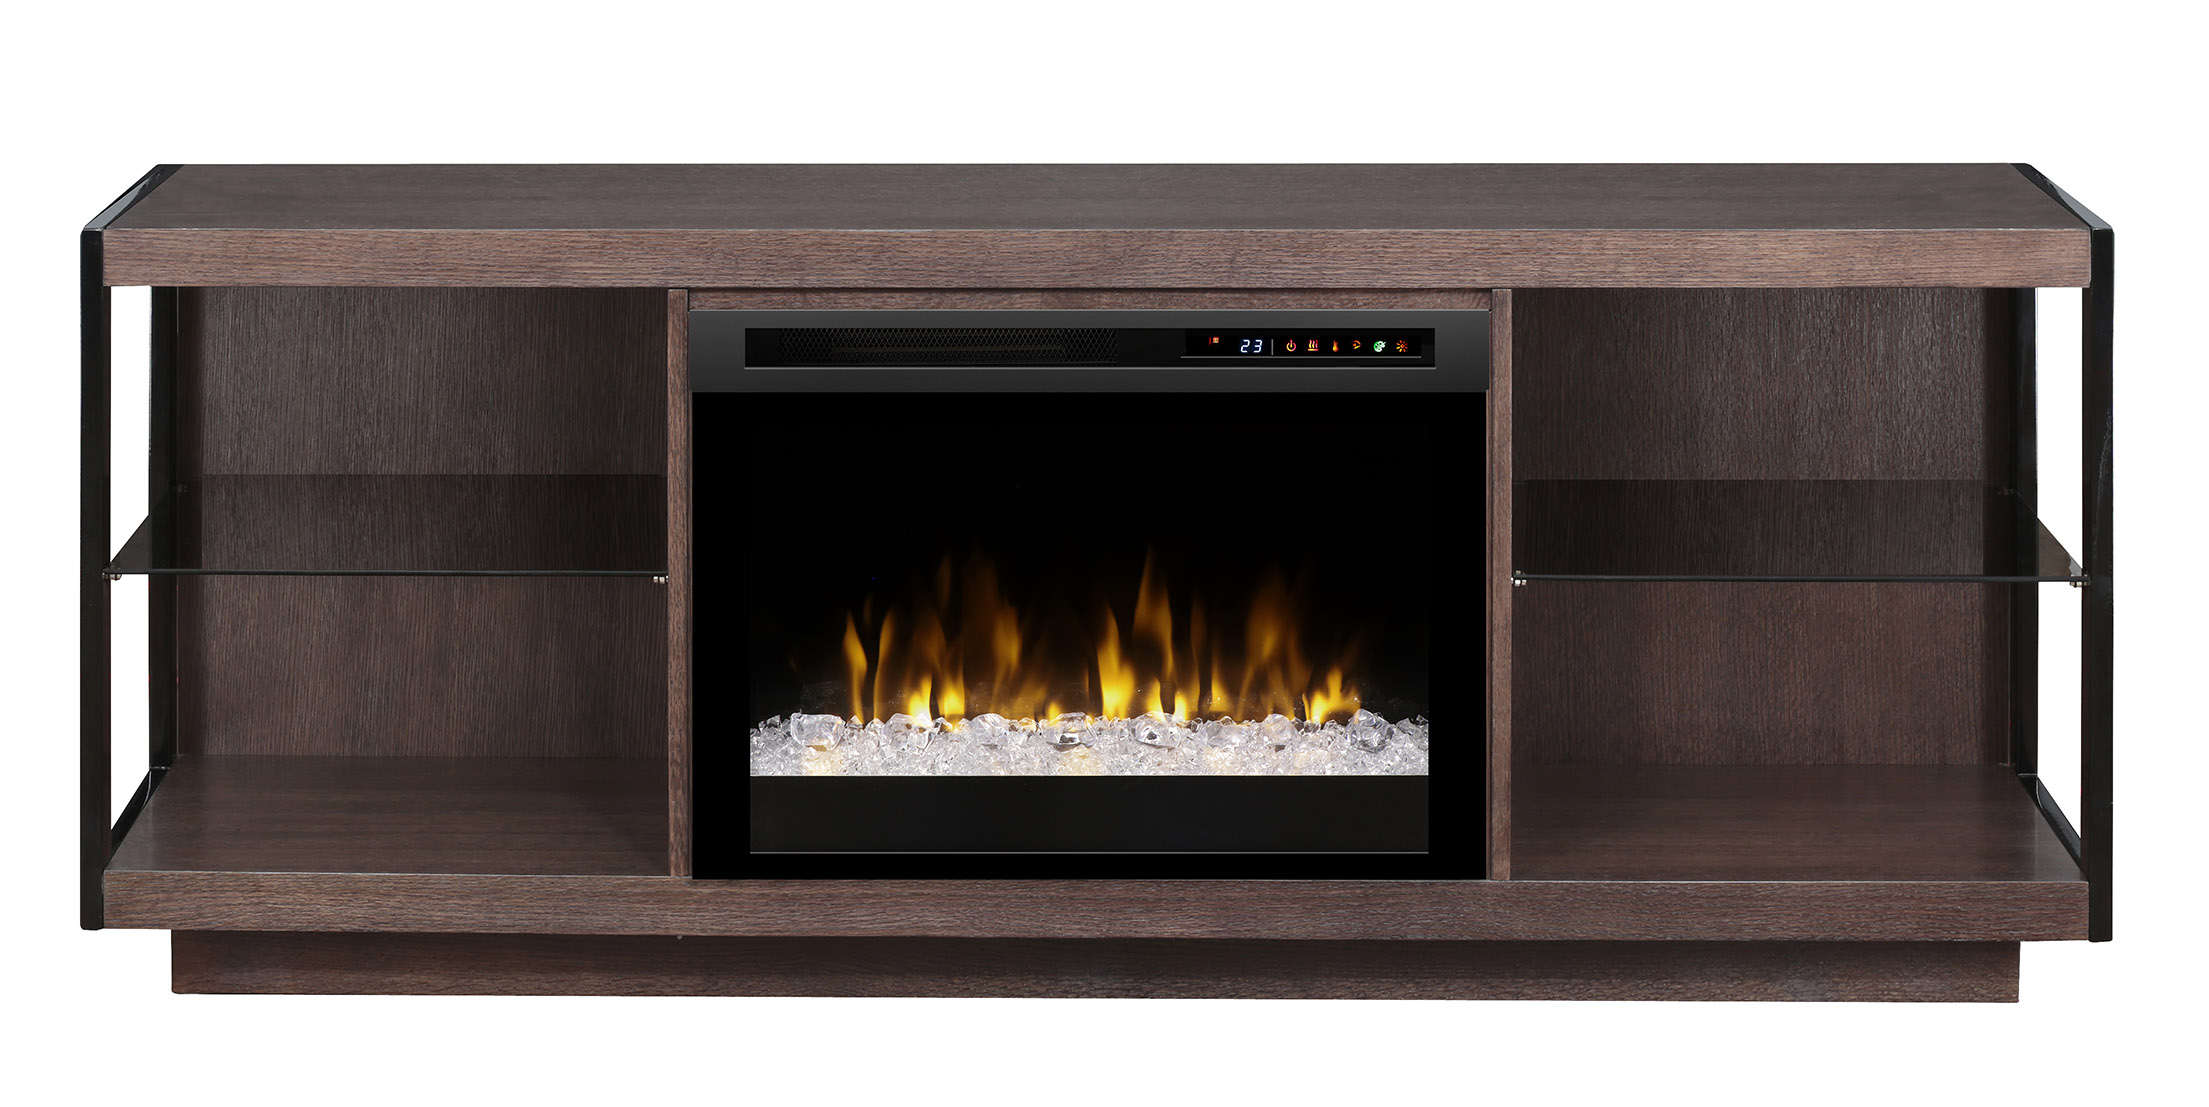 Dimplex Leif Media Console Electric Fireplace Gds26l8 1653tb